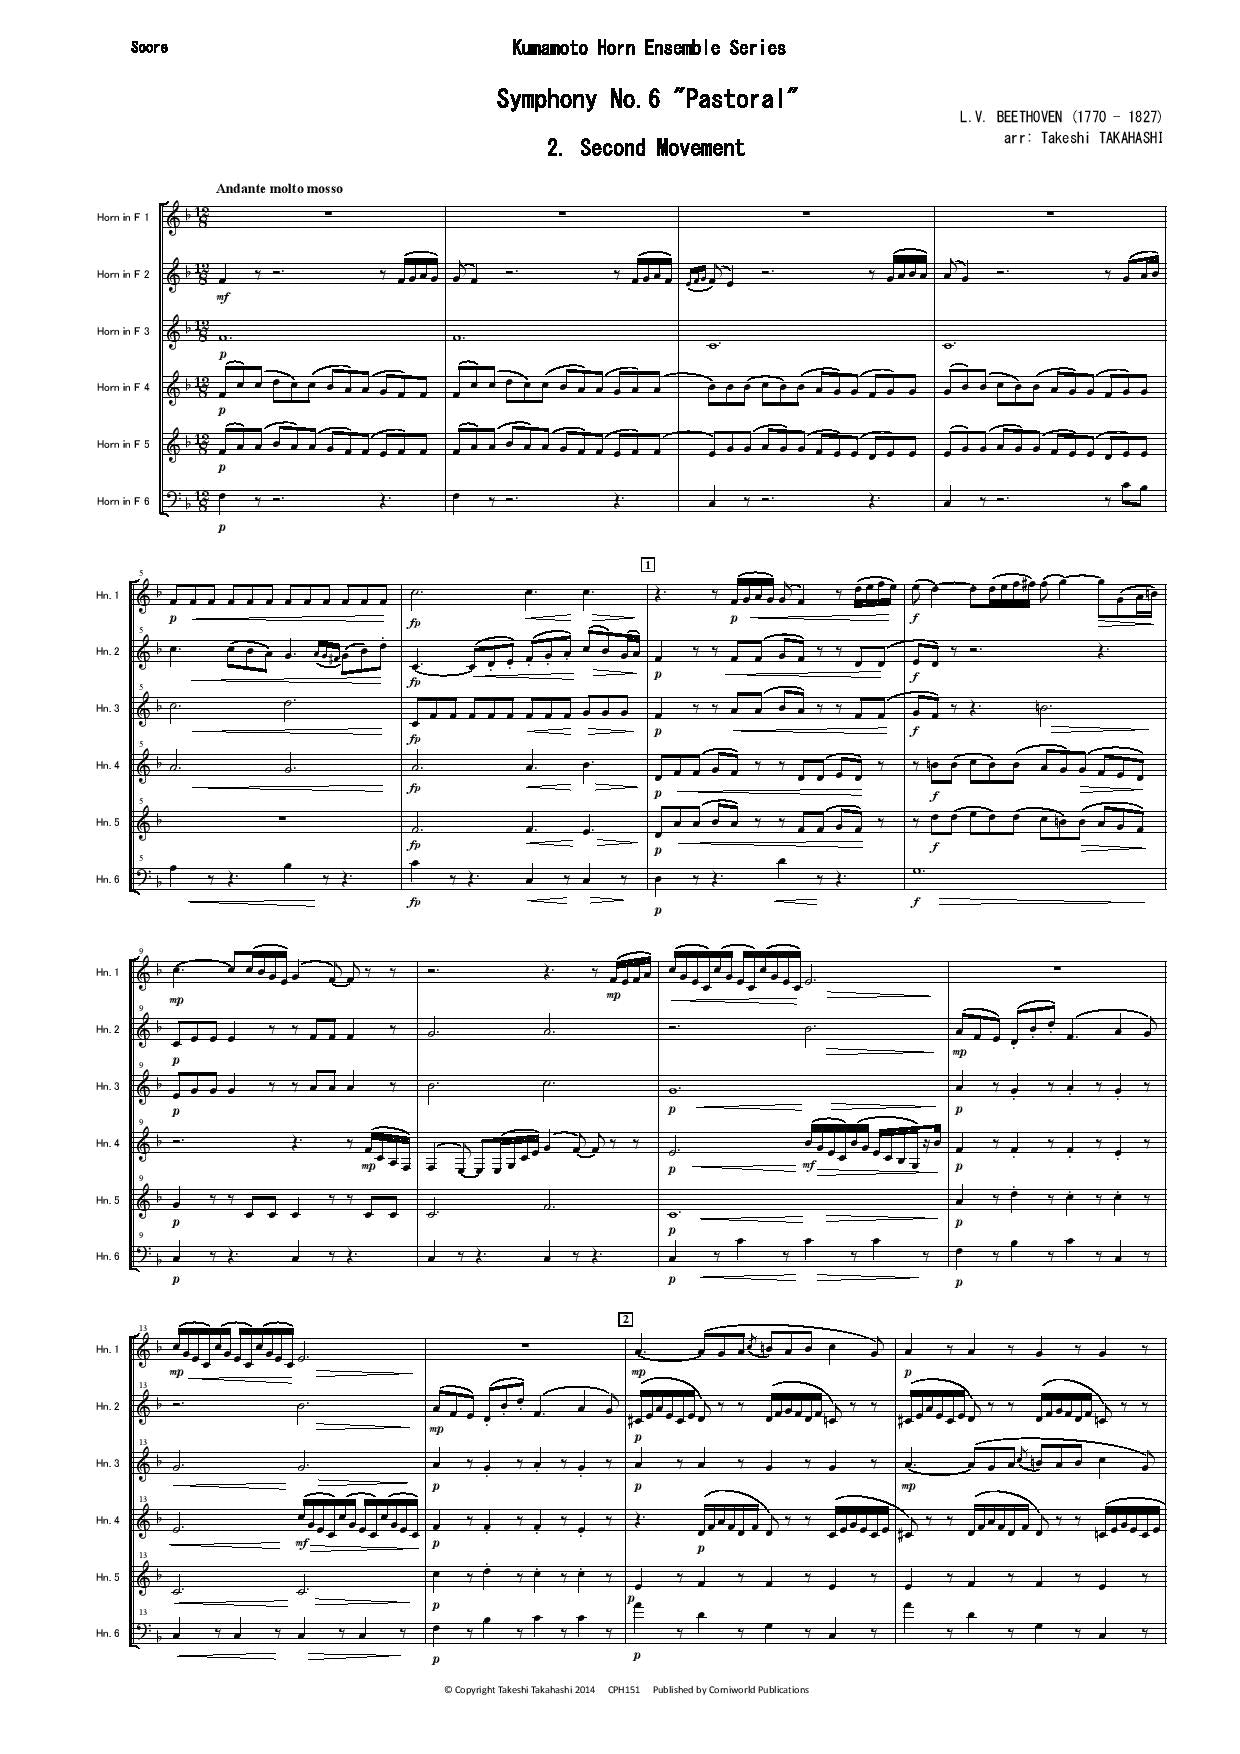 2nd Mvt from Symphony No.6 Pastoral (Beethoven) CPH151